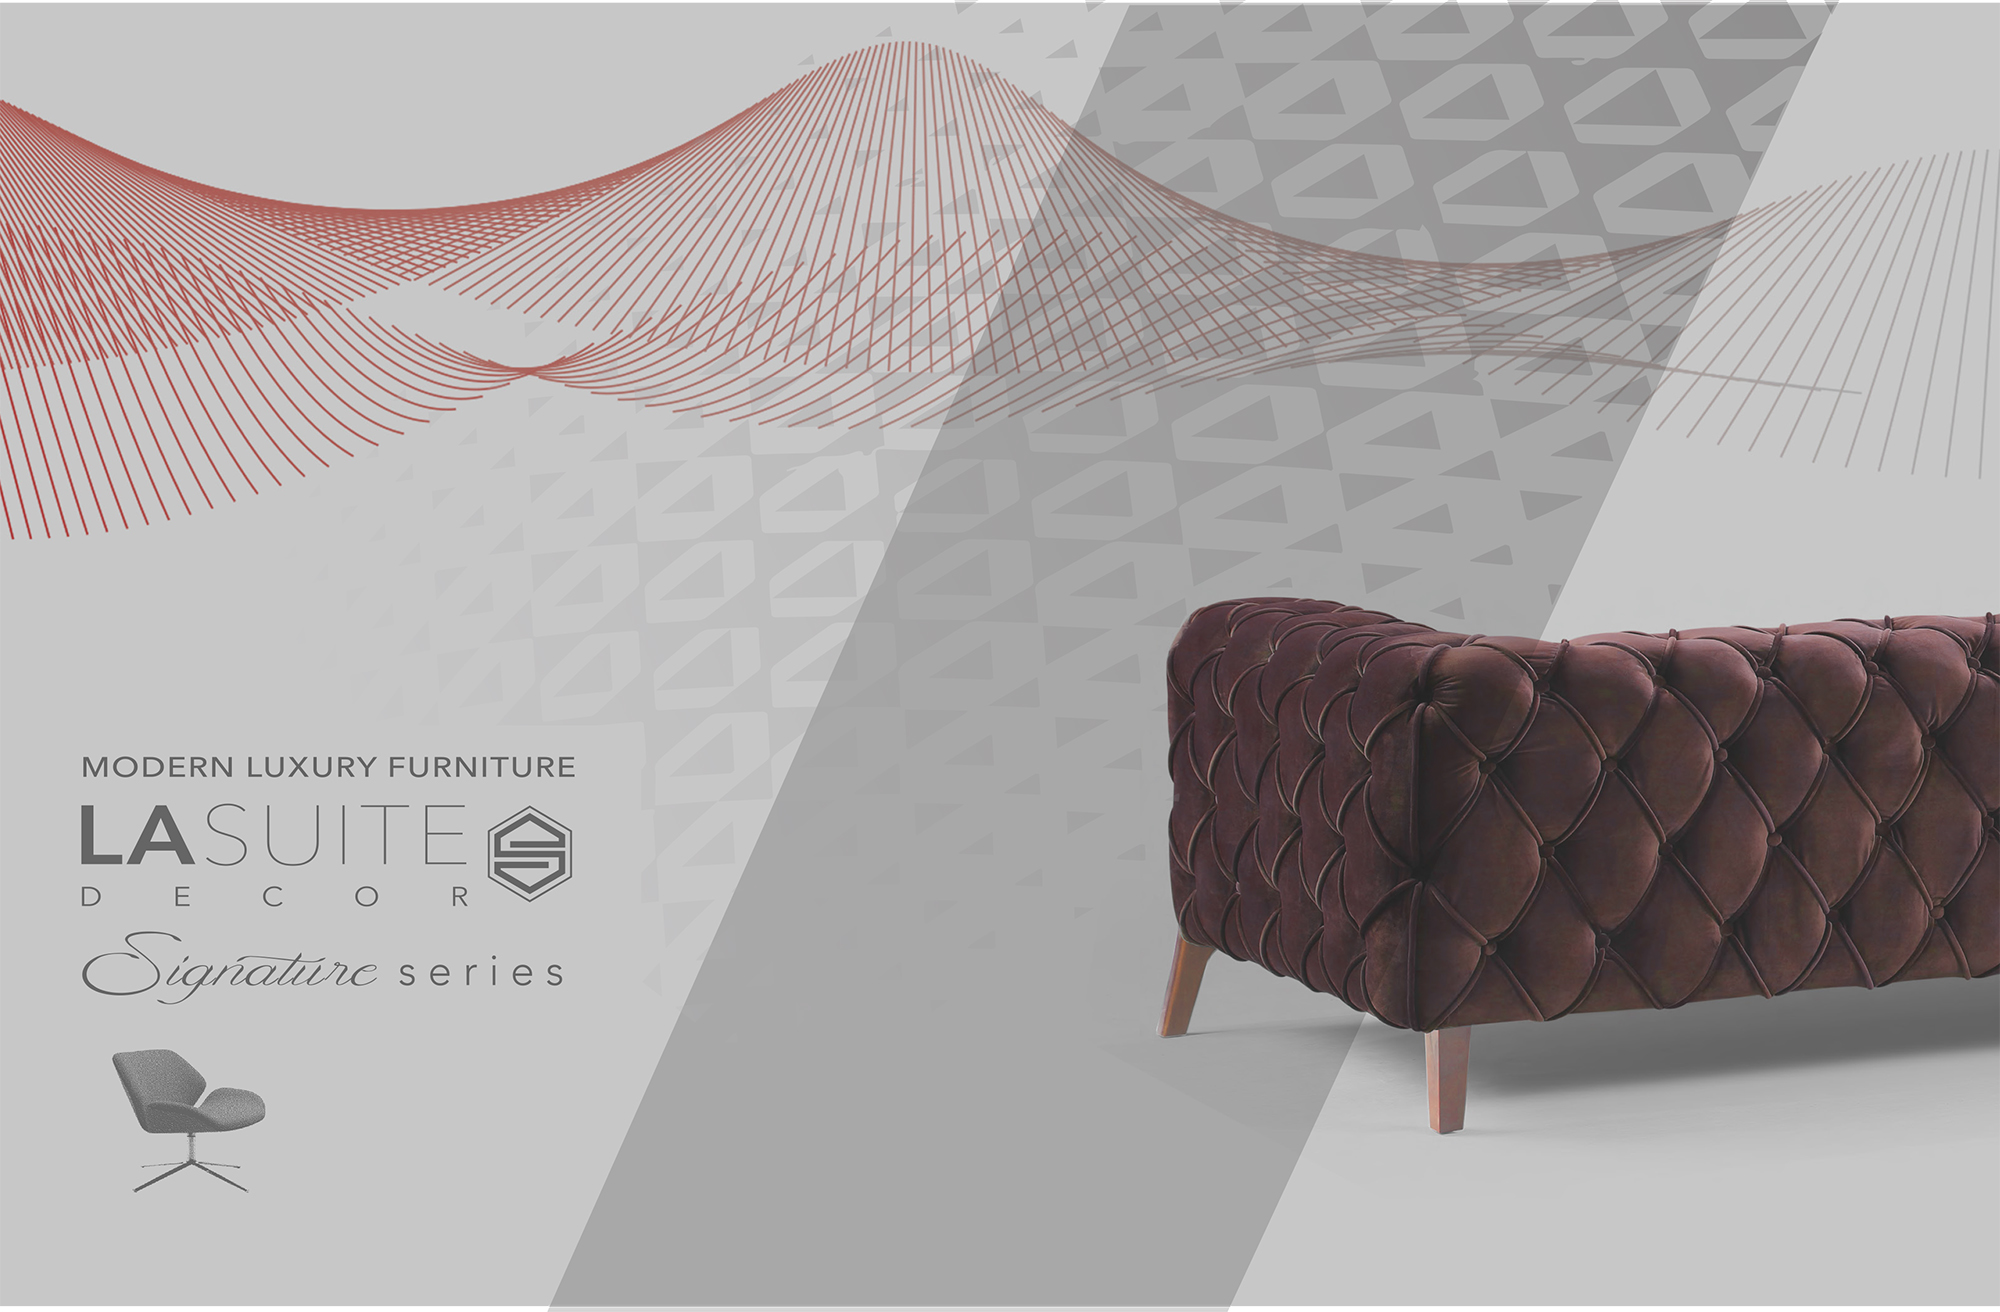 La Suite Sofa, Lounge Chairs Catalogue